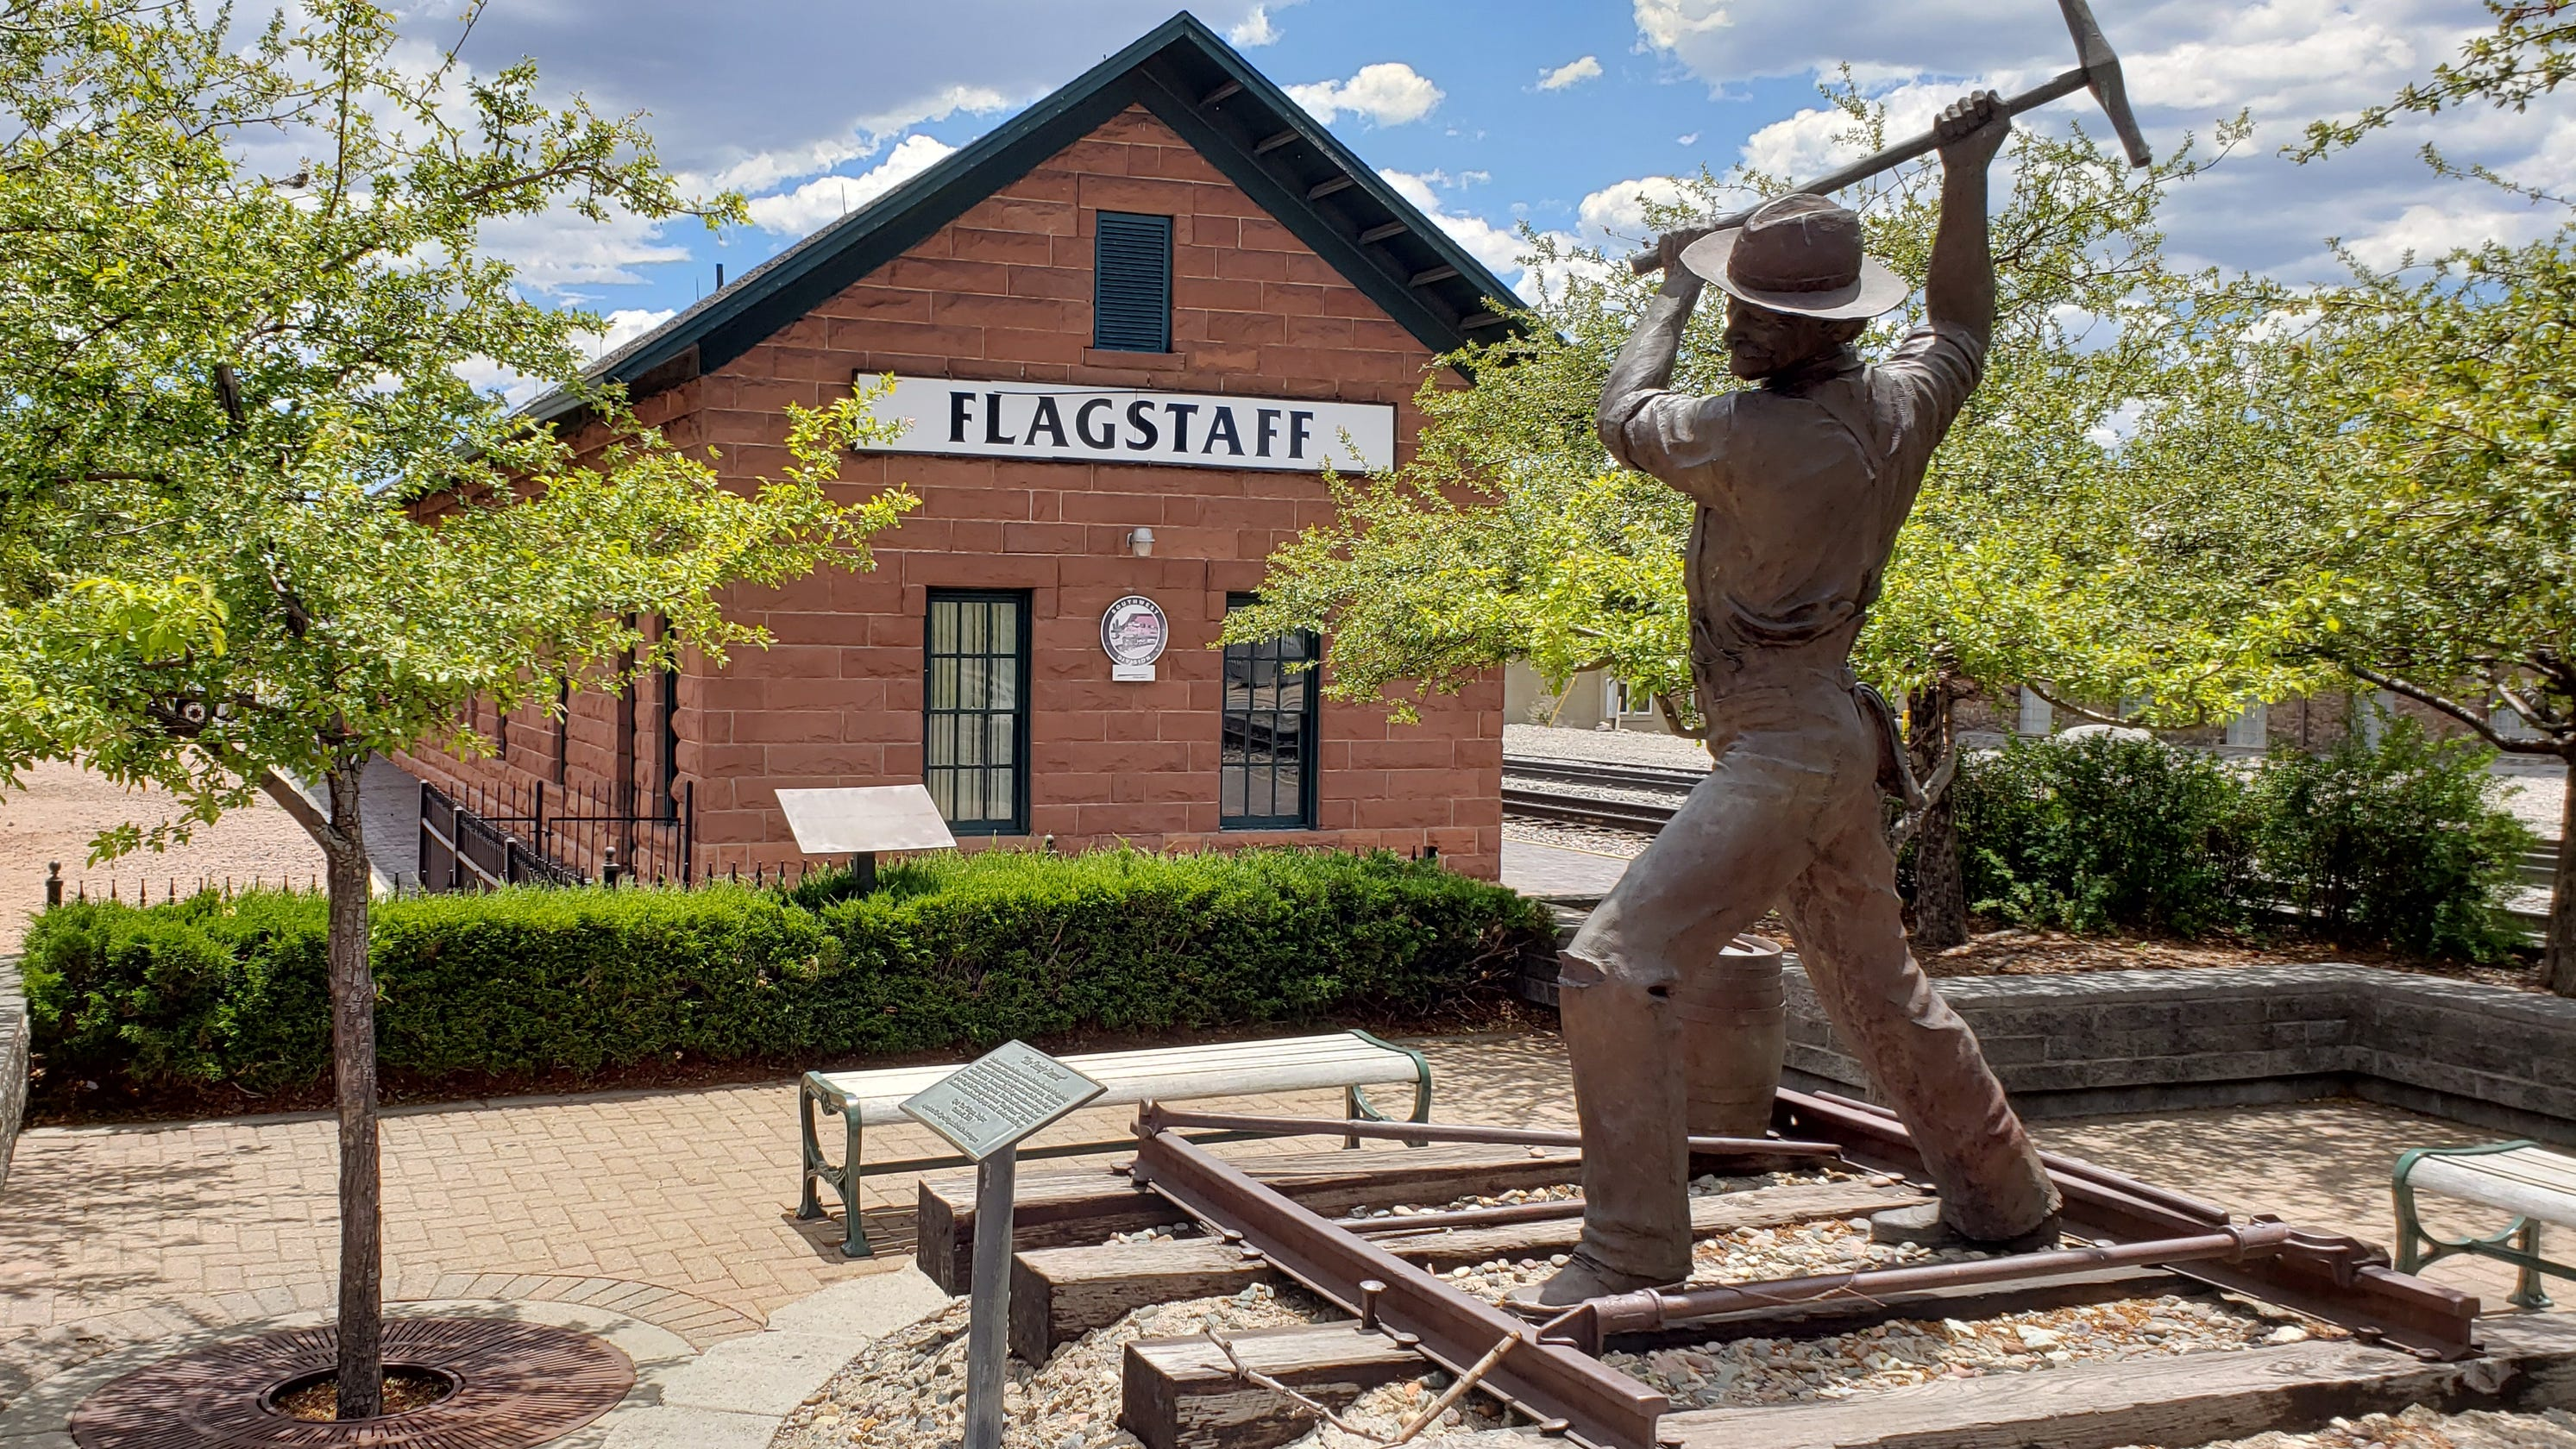 Free and cheap things to do in Flagstaff: Walking tours, murals, wildlife viewing and more